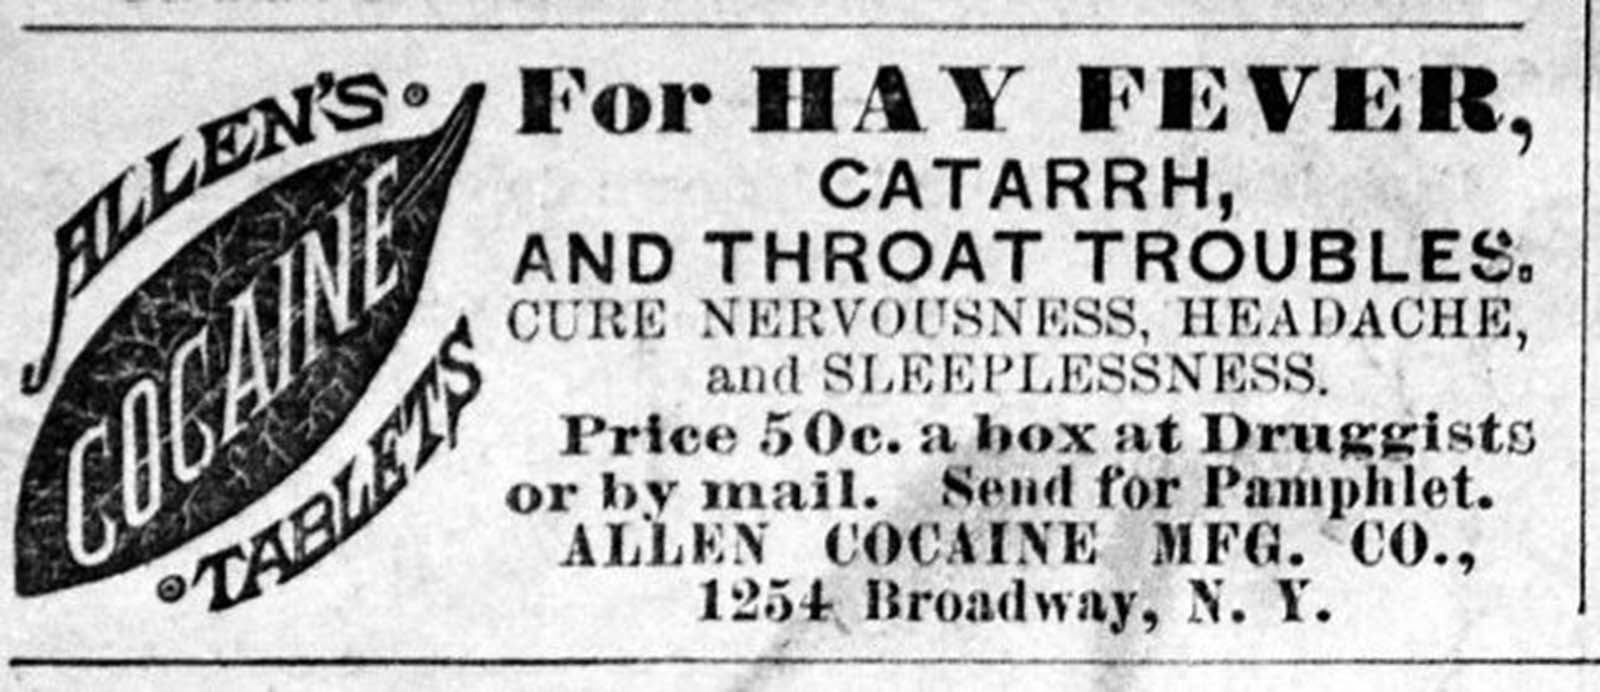 Allen's cocaine tablets.